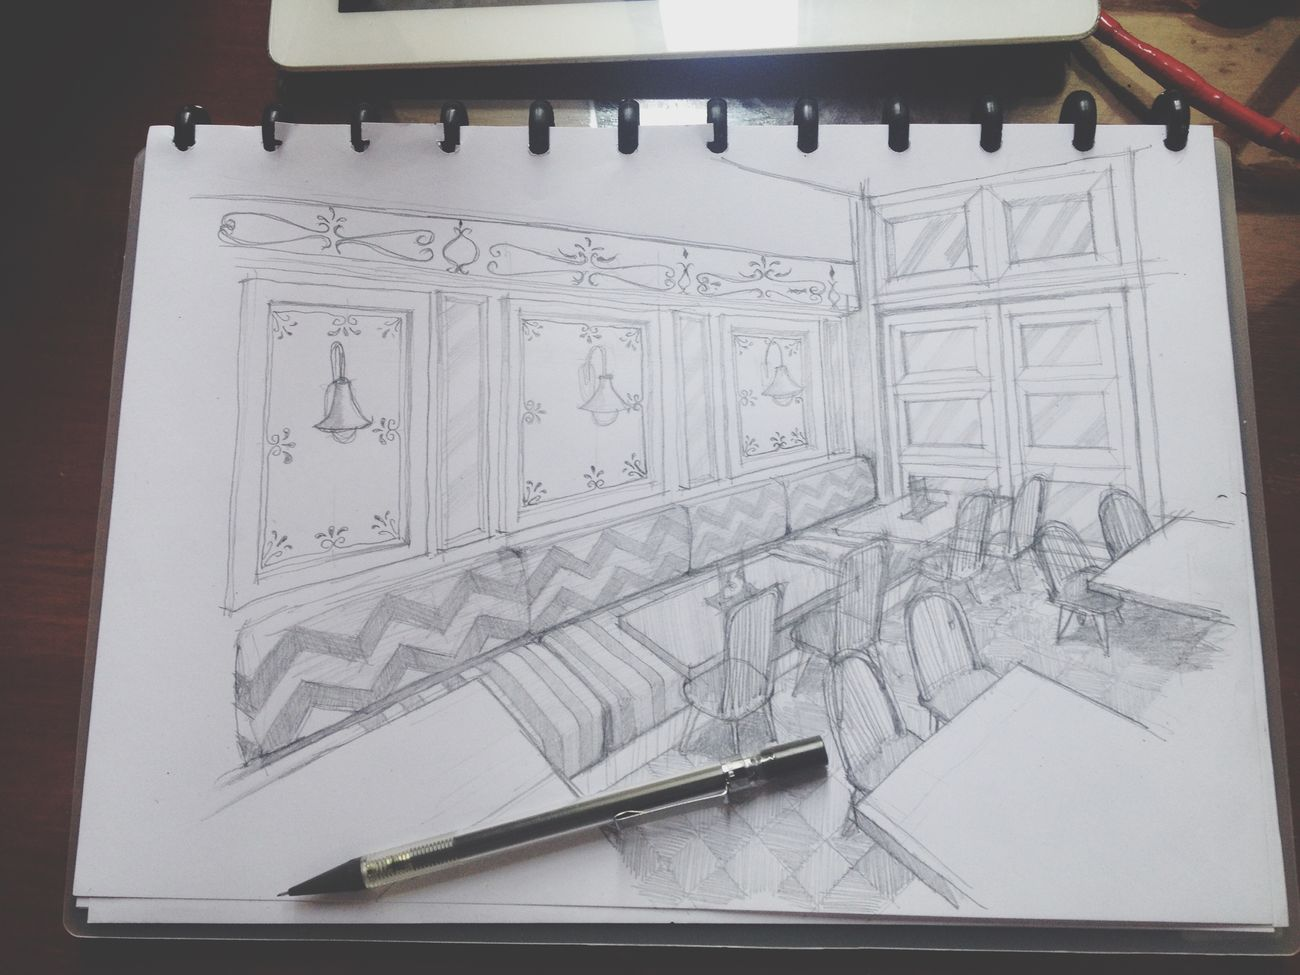 sunday sketch Sketch Drawing Doodling Interior Design Design Cafe Vintage Pencil Jheffryswid Design Art